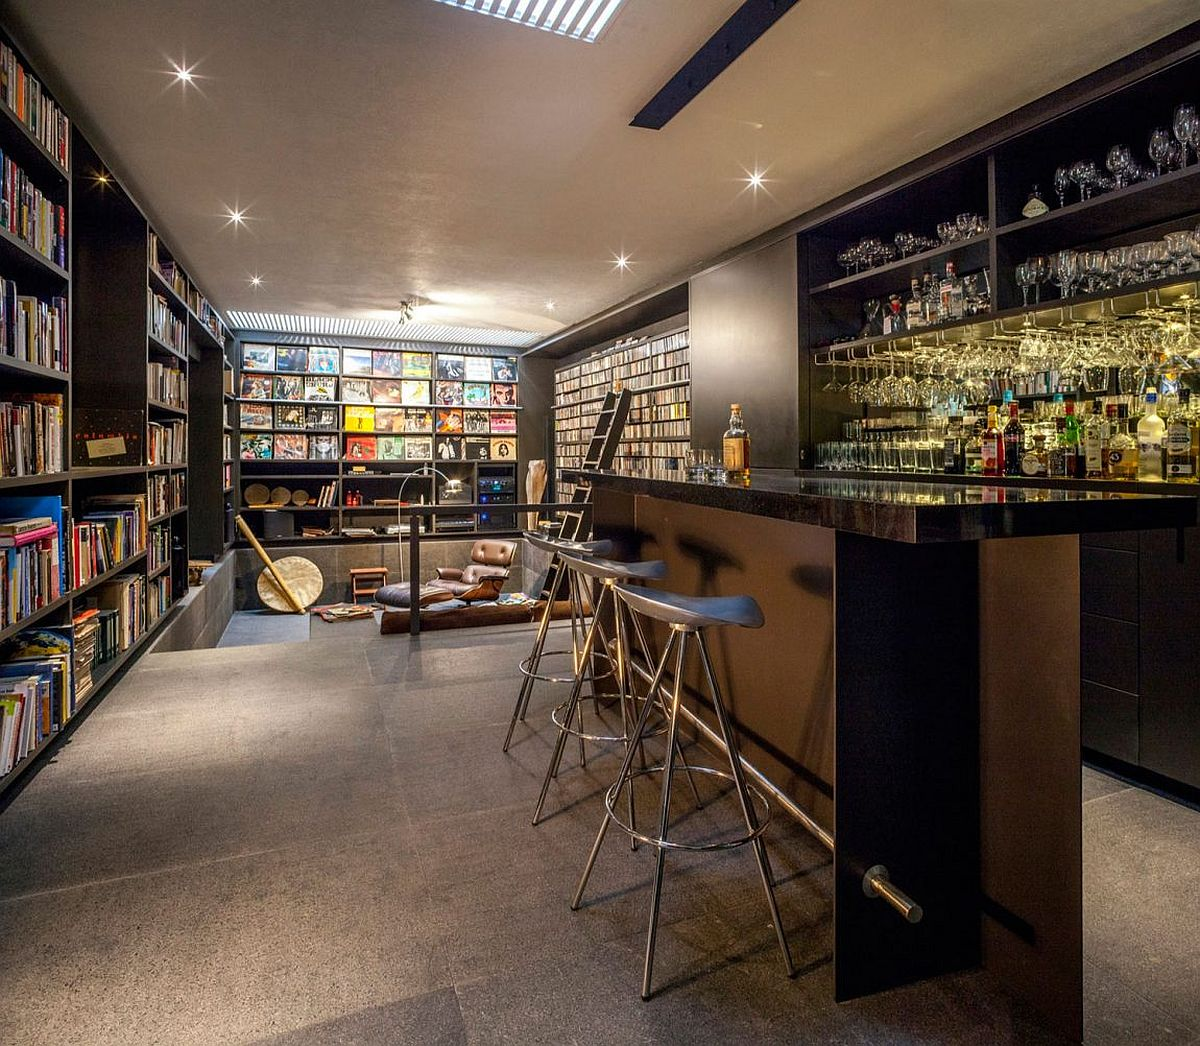 Art-work-wall-of-books-and-a-home-bar-shape-an-intimate-interior